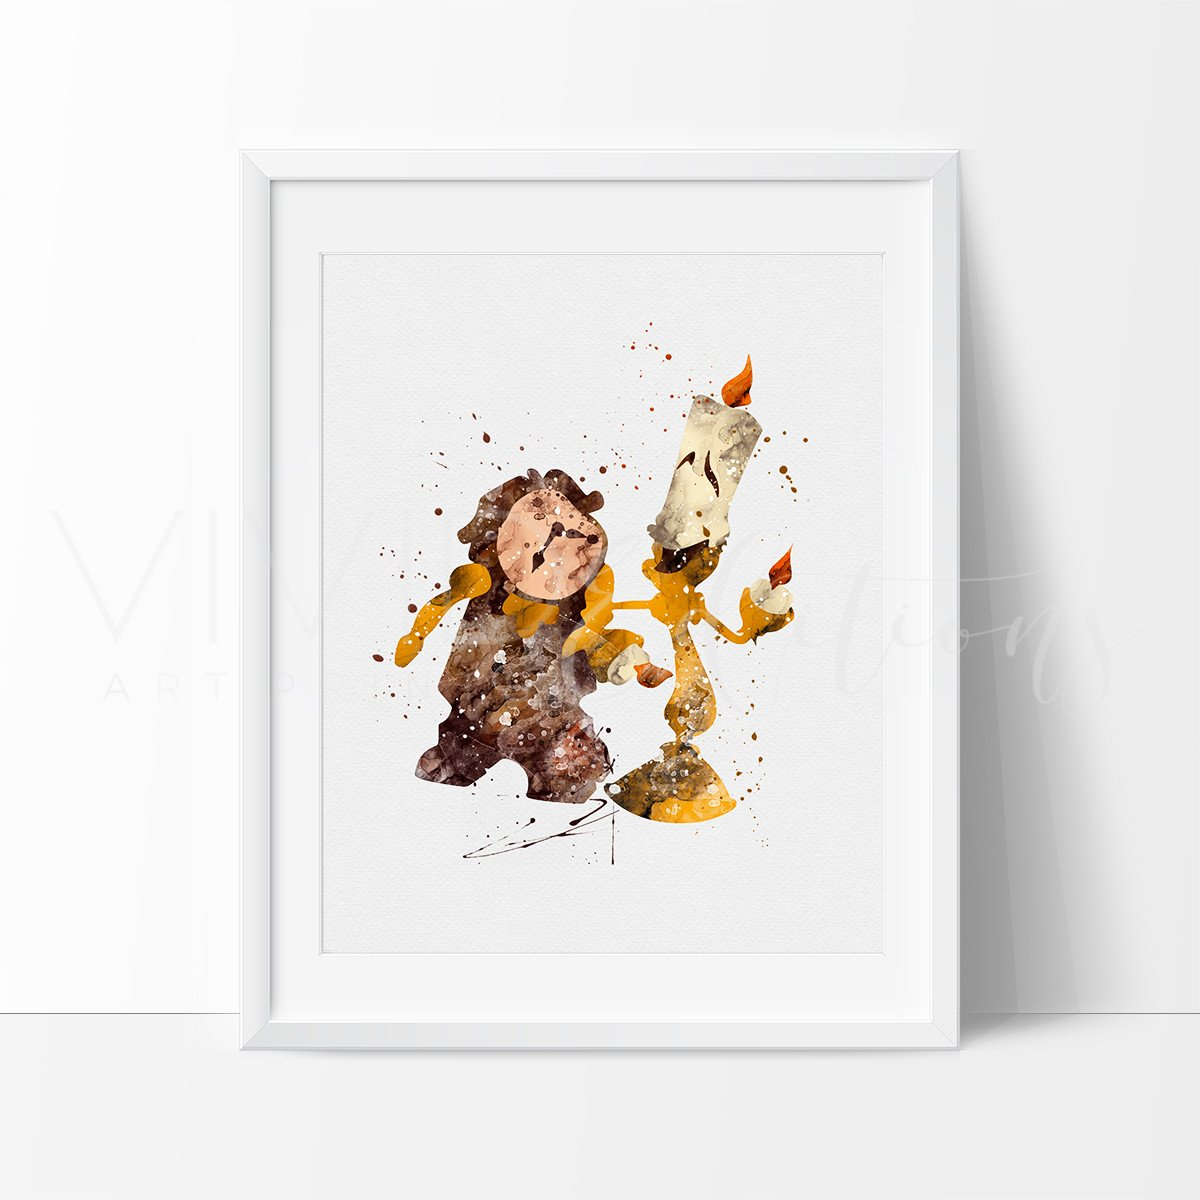 Image of Lumiere & Cogsworth, Beauty and the Beast Watercolor Art Print